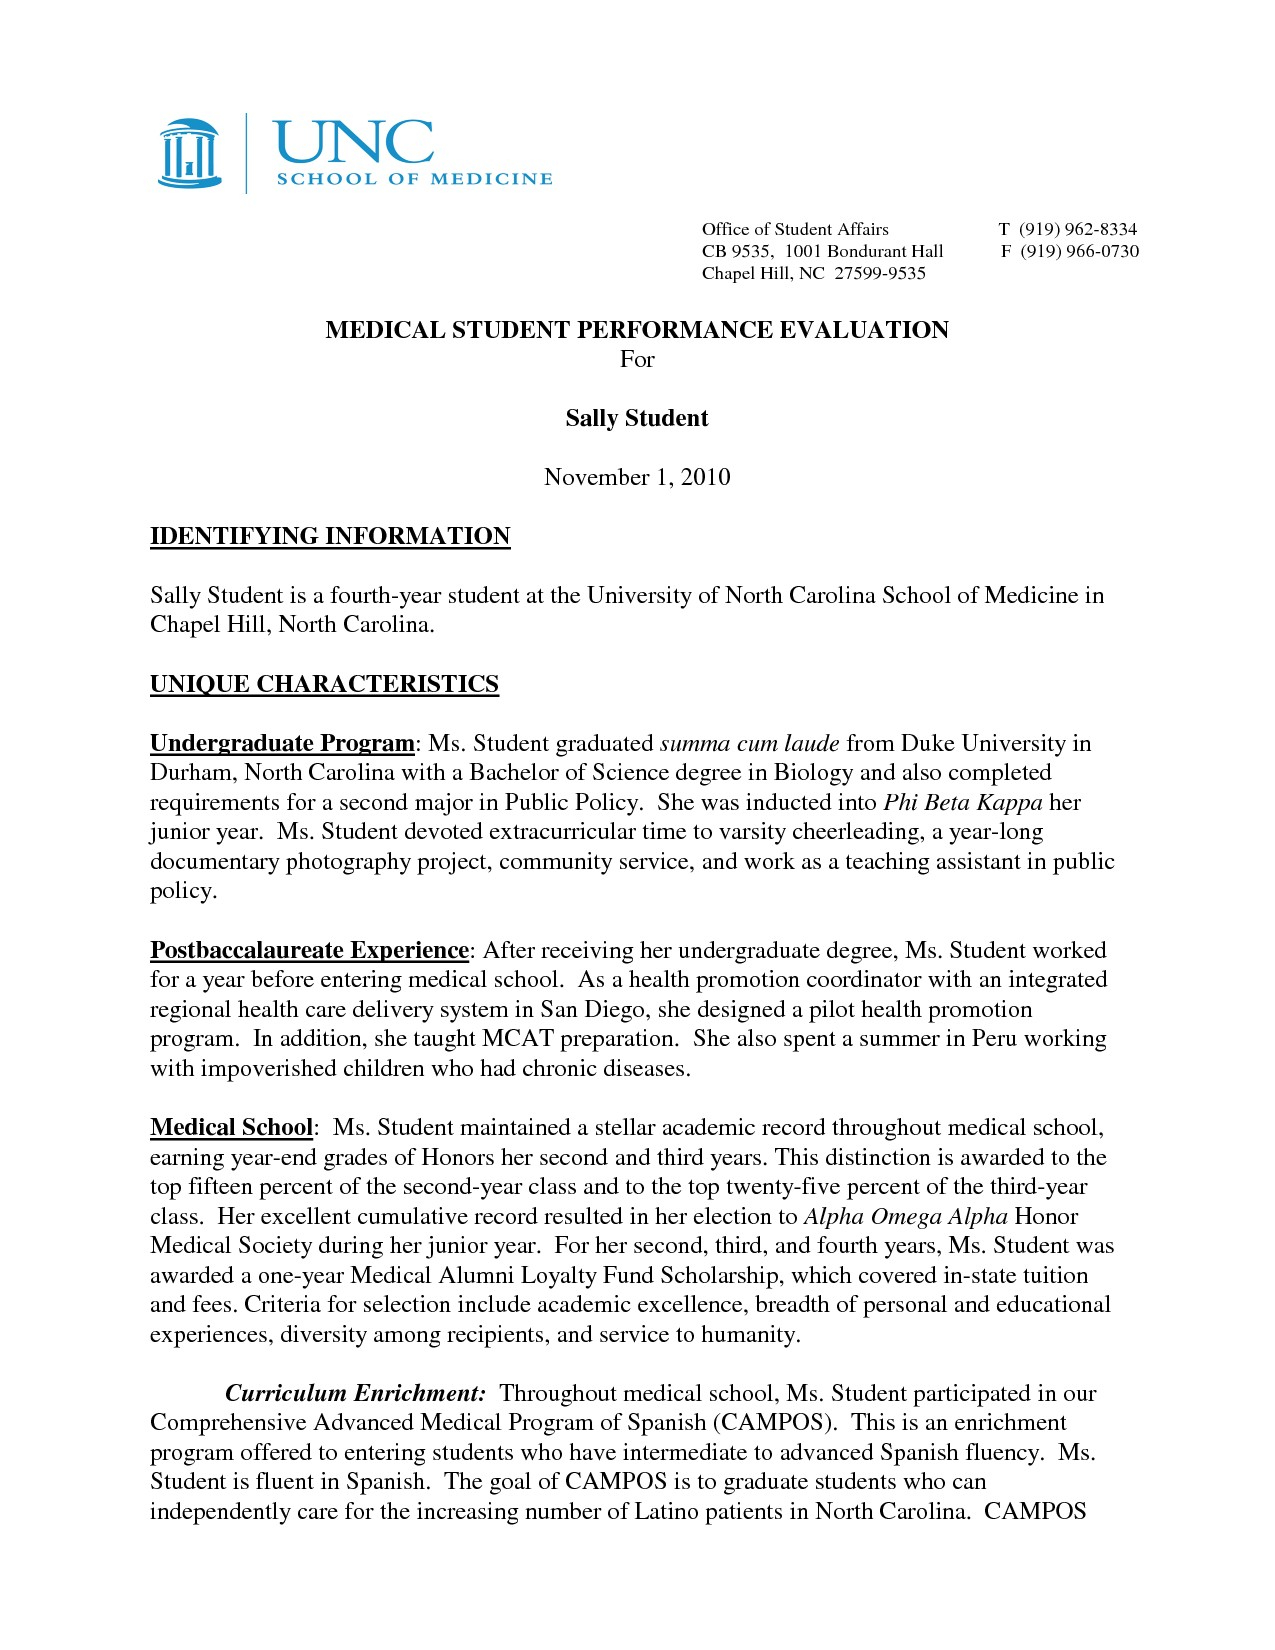 Medical School Letter Of Recommendation Template - Re Mendation Letter Template Medical Residency Copy Sample Medical